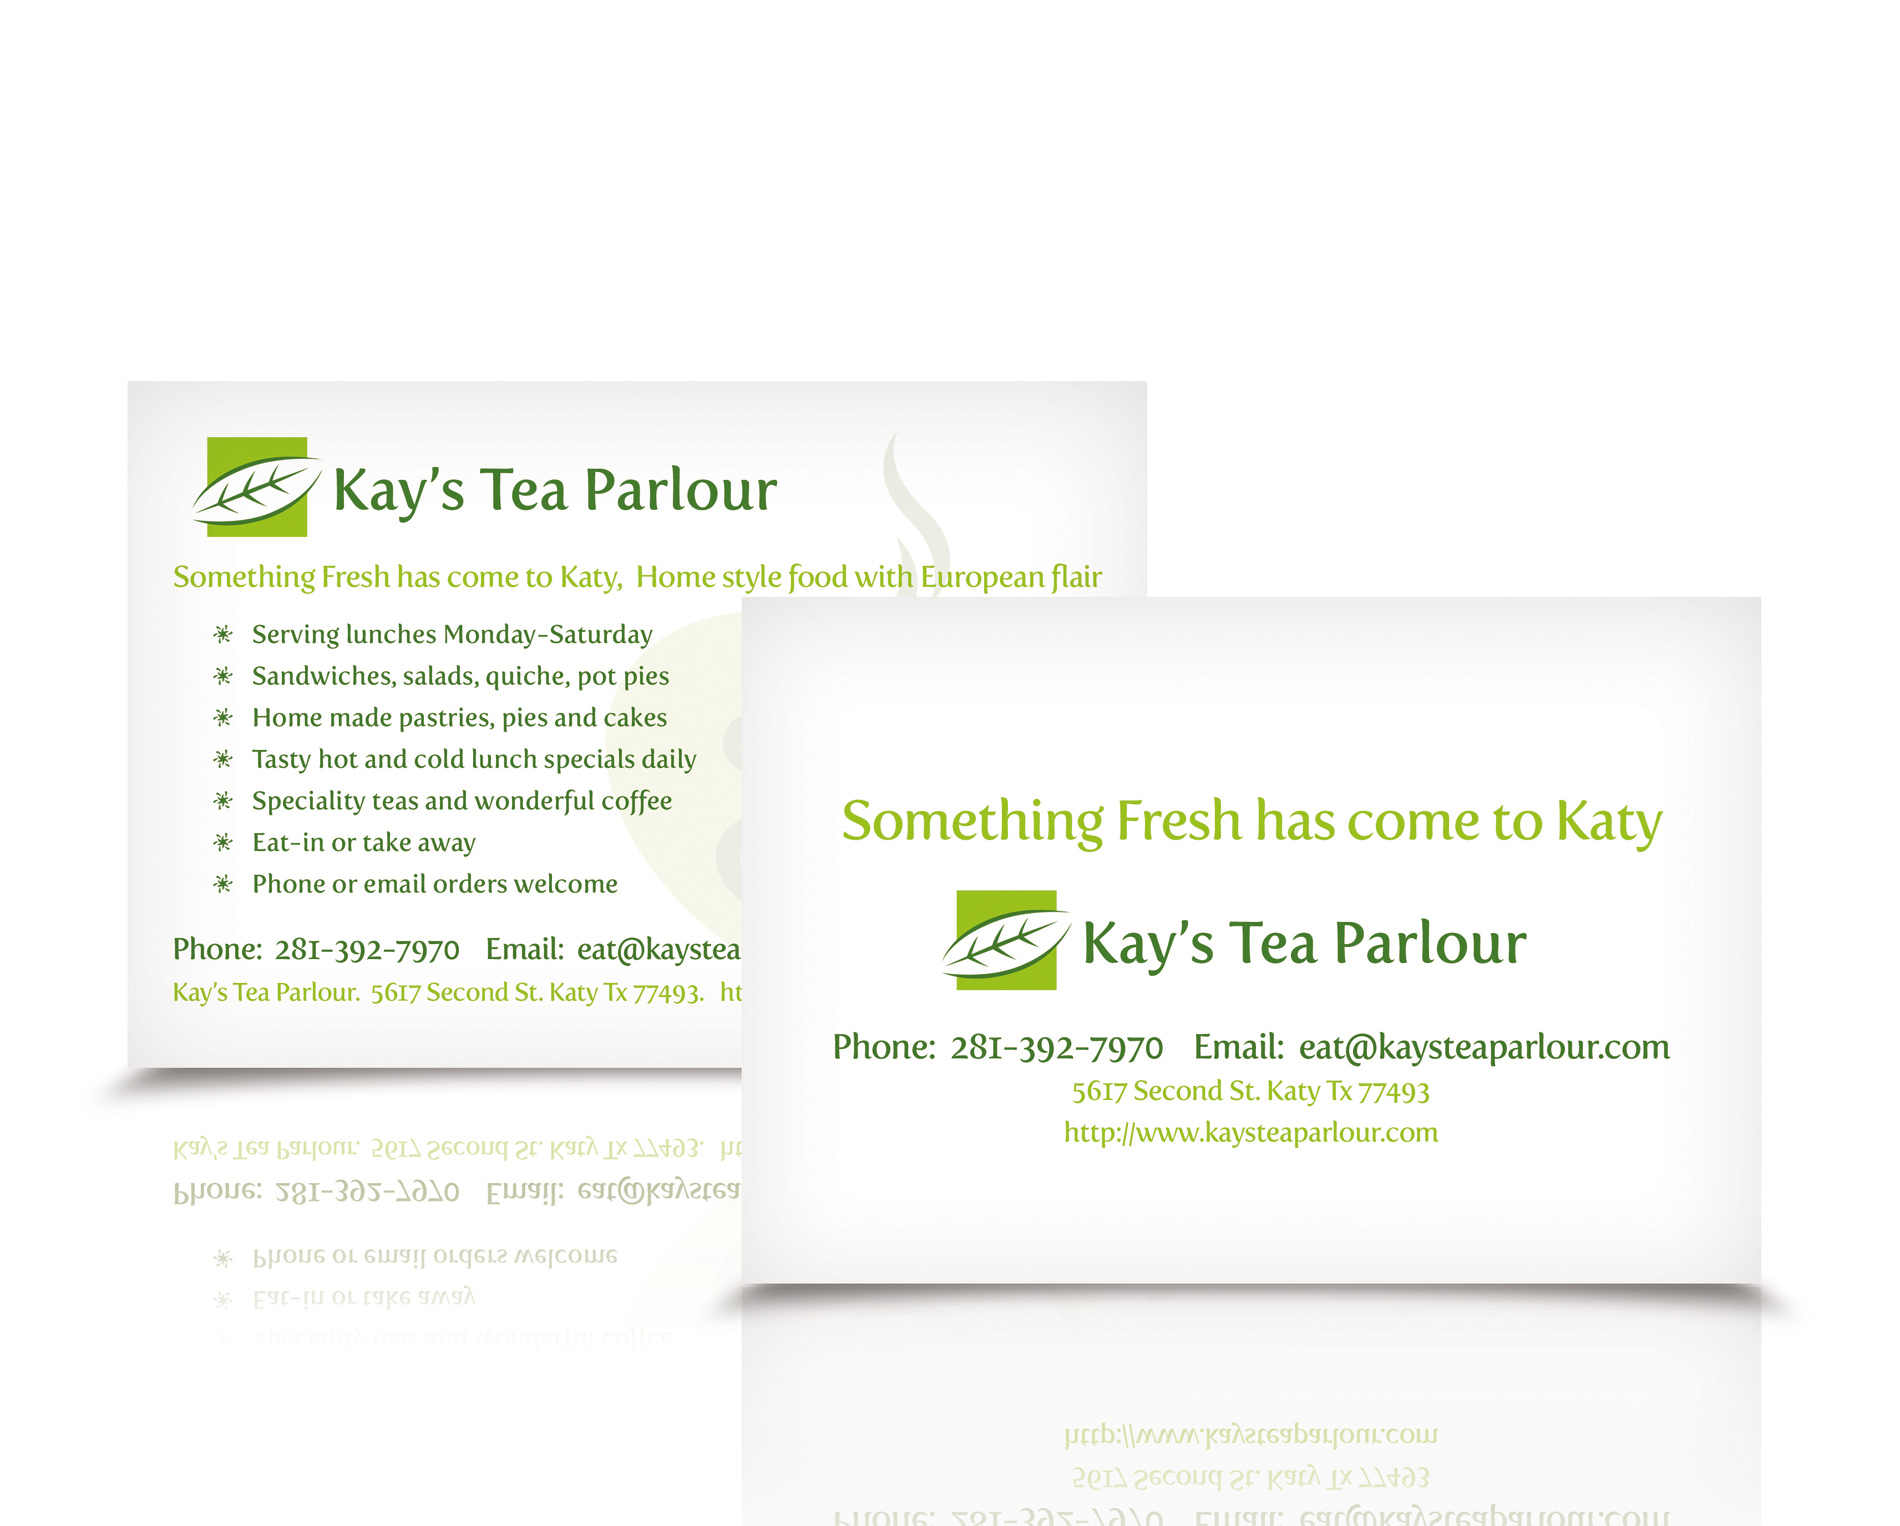 4 X 6 Flyer Printing Services